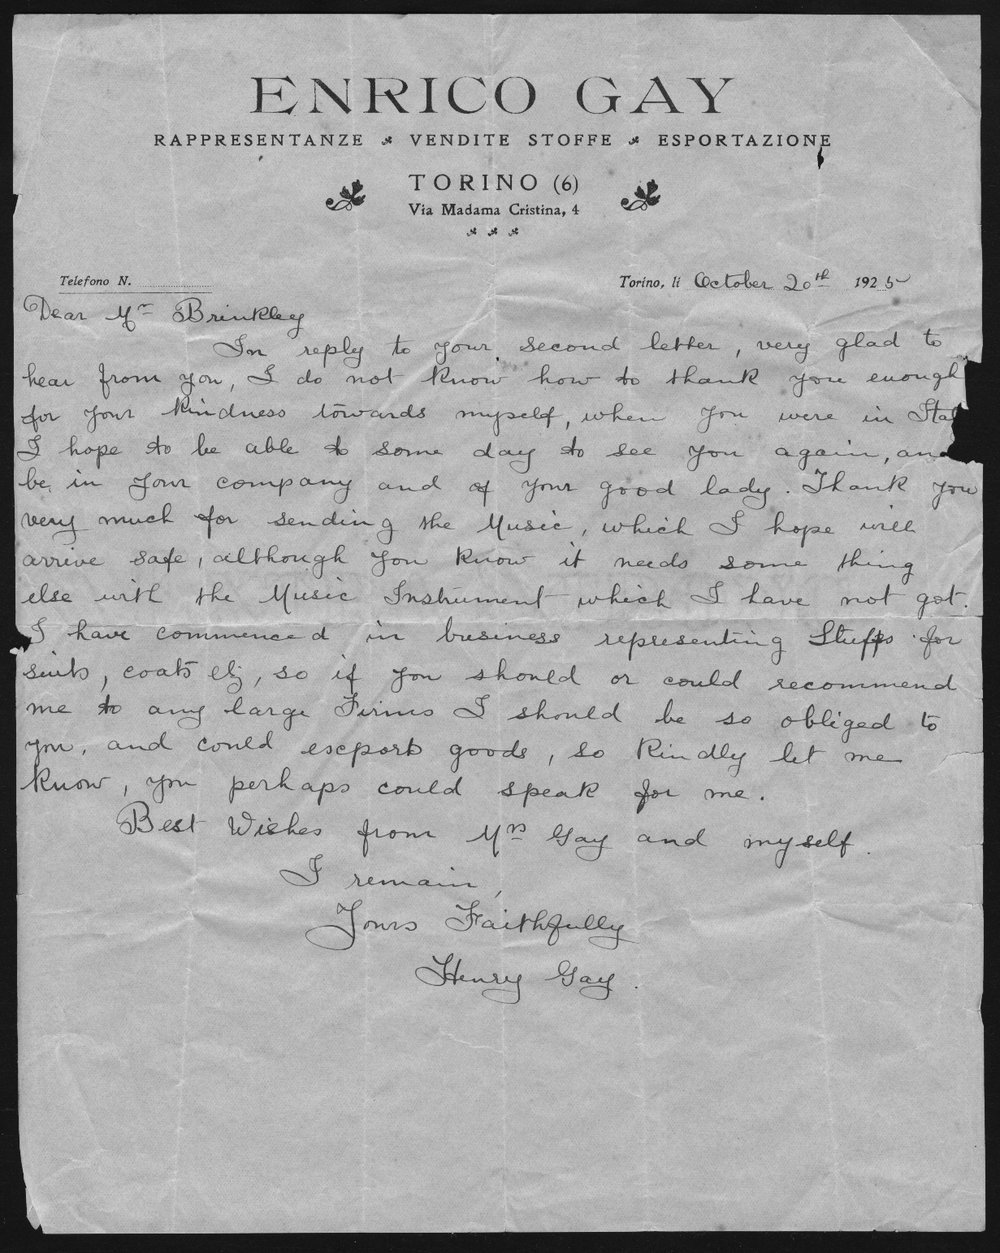 John R. Brinkley correspondence and political material - 6